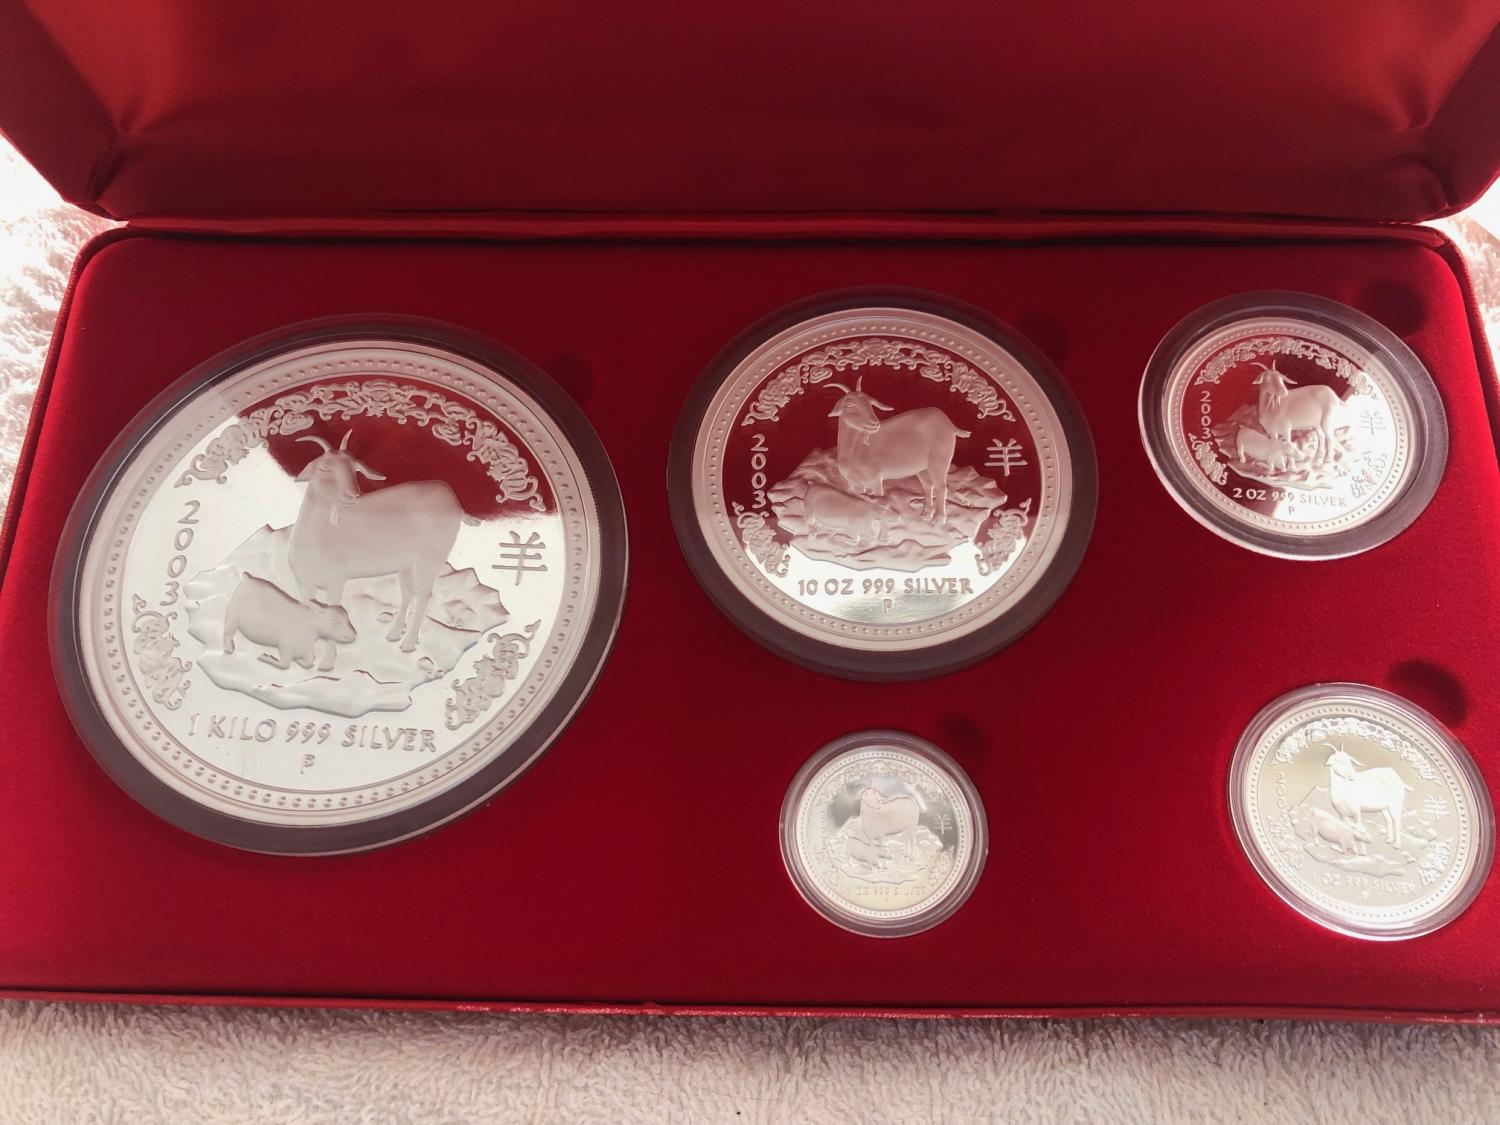 Thumbnail for 2003 Year of the Goat 5 Coin Proof Collection 45.65 oz